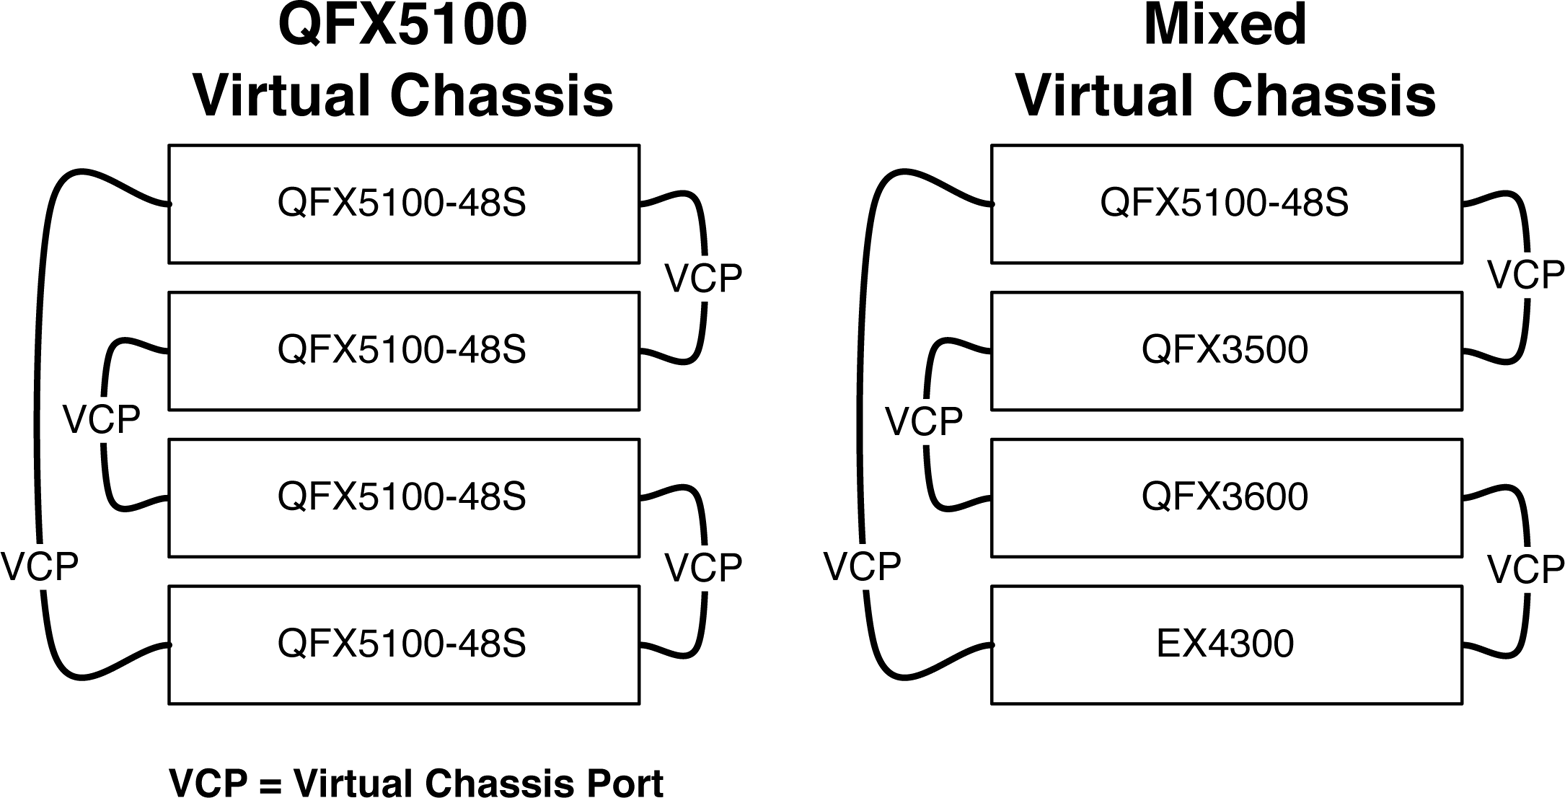 QFX5100 Virtual Chassis and mixed Virtual Chassis